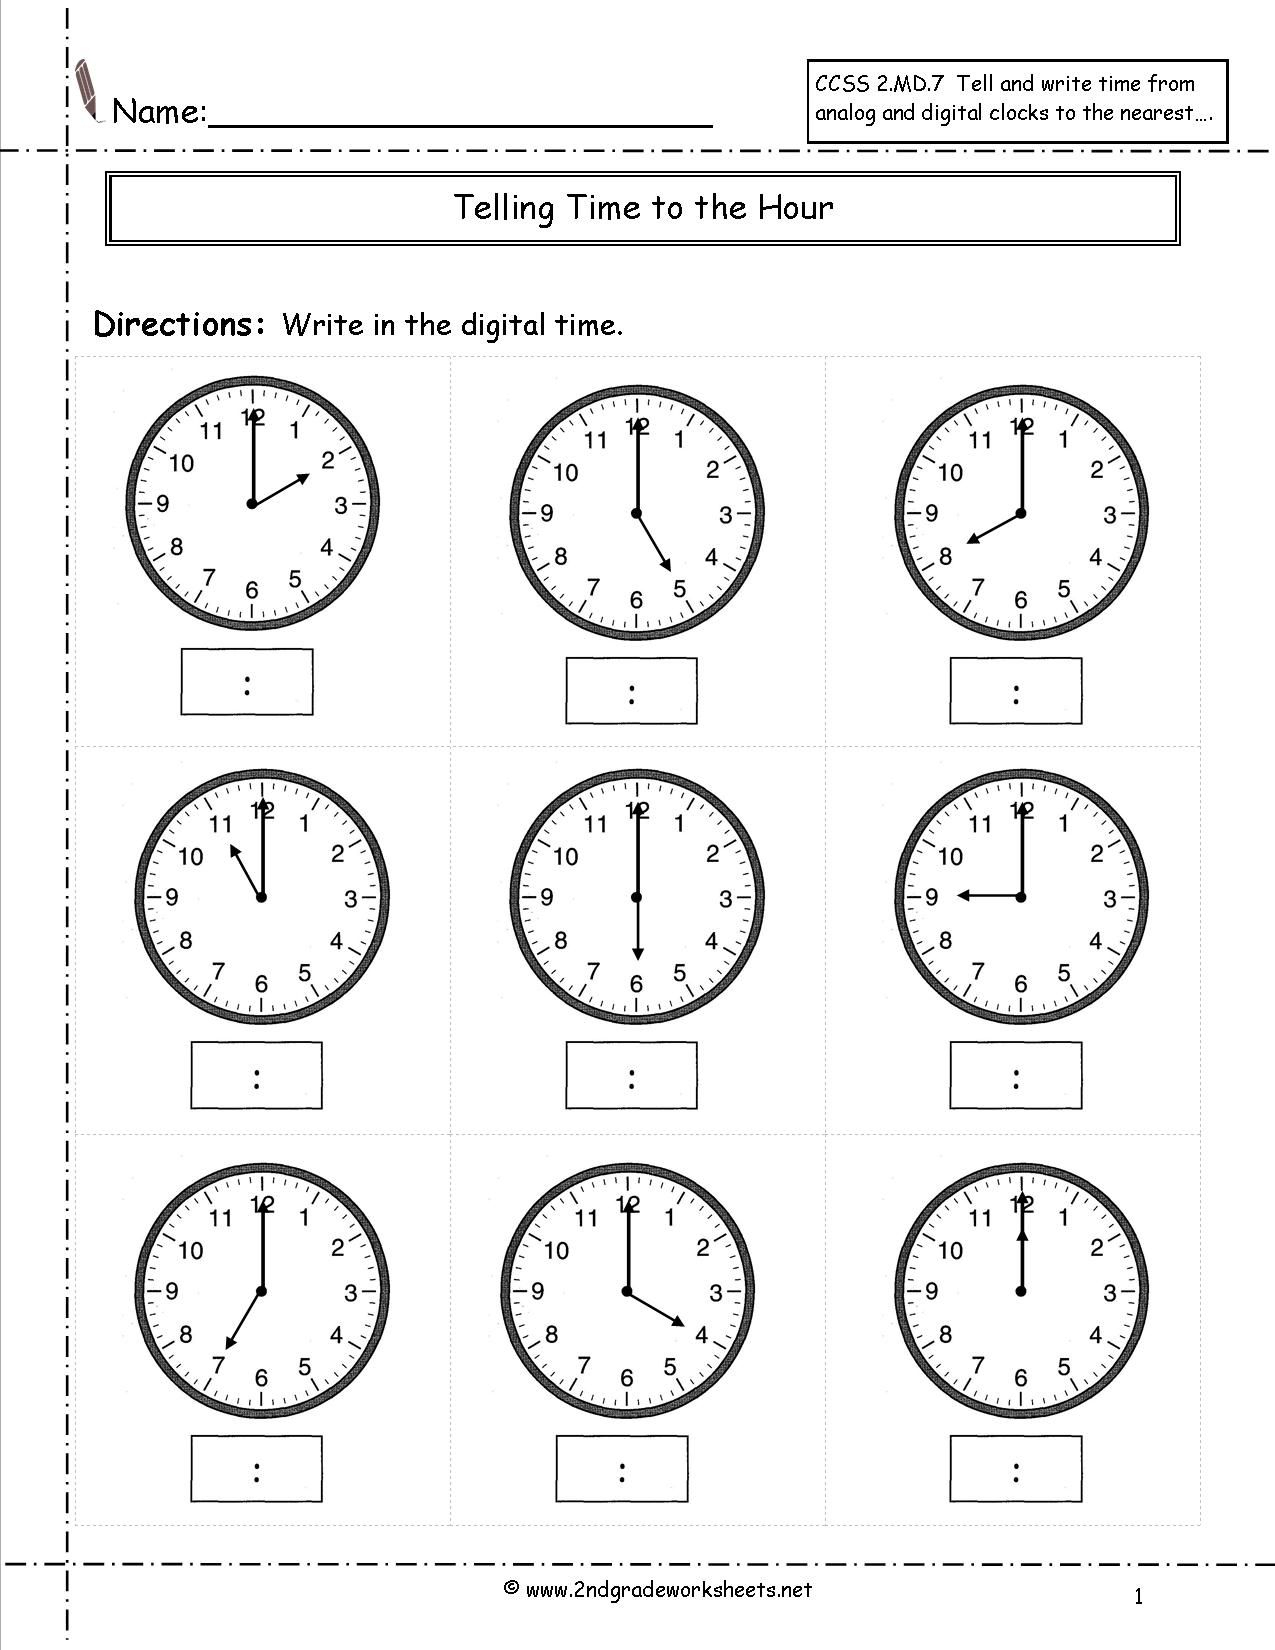 Telling Time Worksheets Half Hour | זמן | Clock Worksheets | Telling Time Printable Worksheets First Grade